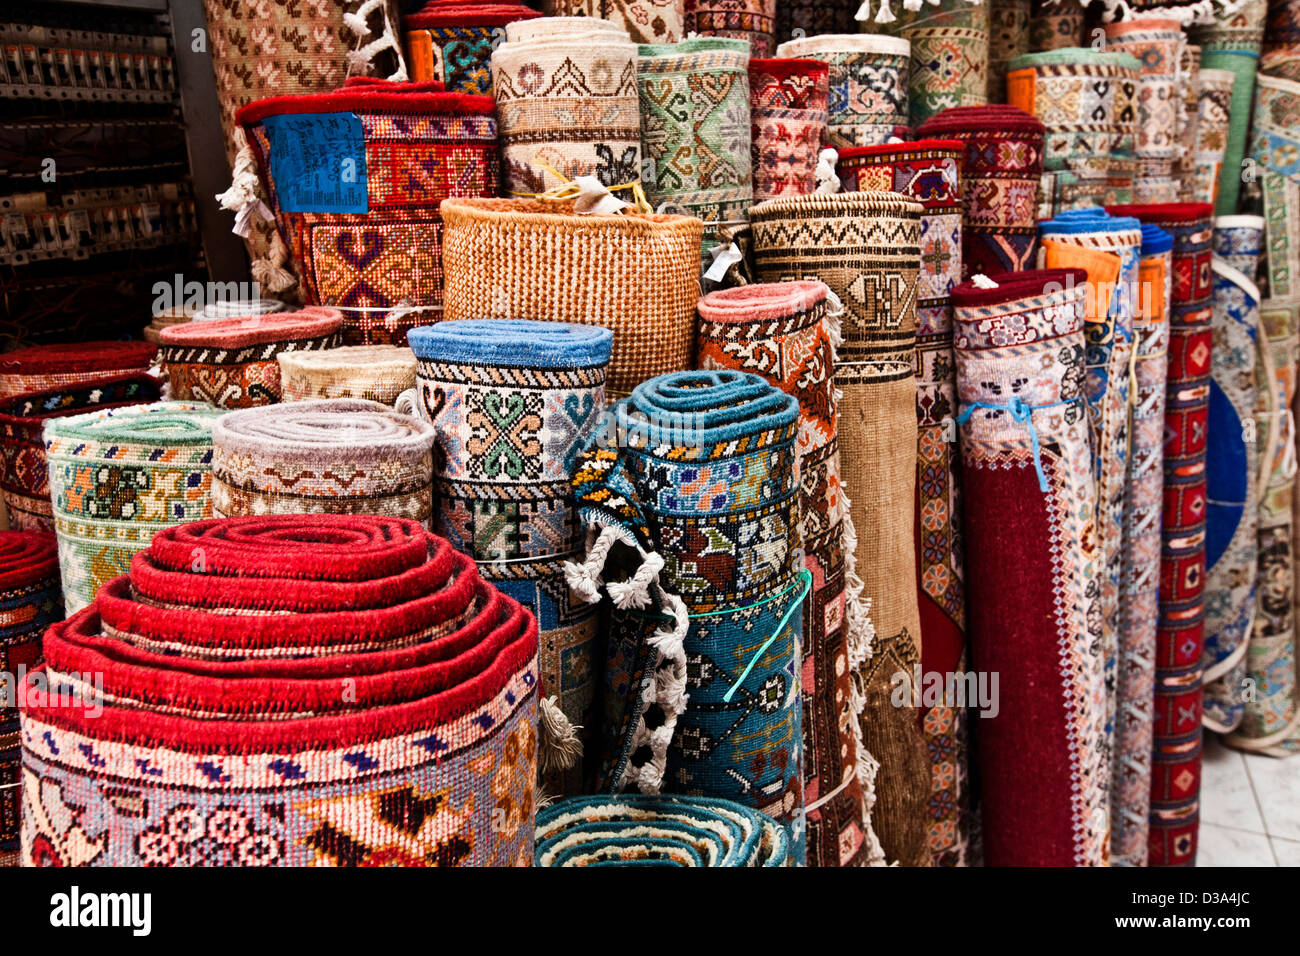 Rugs For Sale In Souk Marrakech Morocco Stock Photo